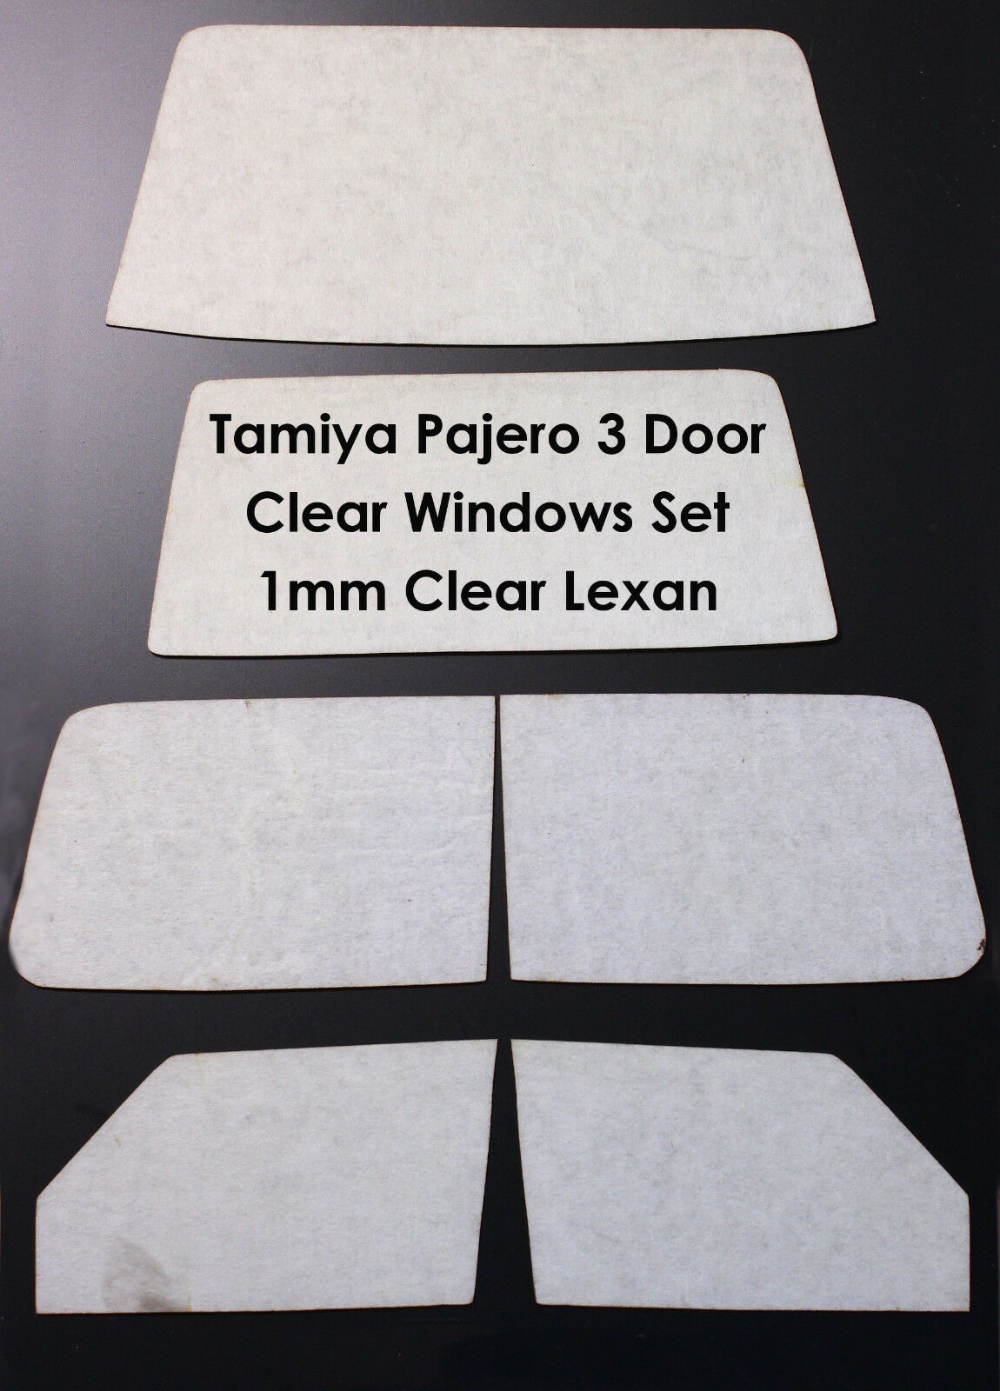 Details About 2016 New Clear Lexan Windows For Tamiya Cc 01 Pajero